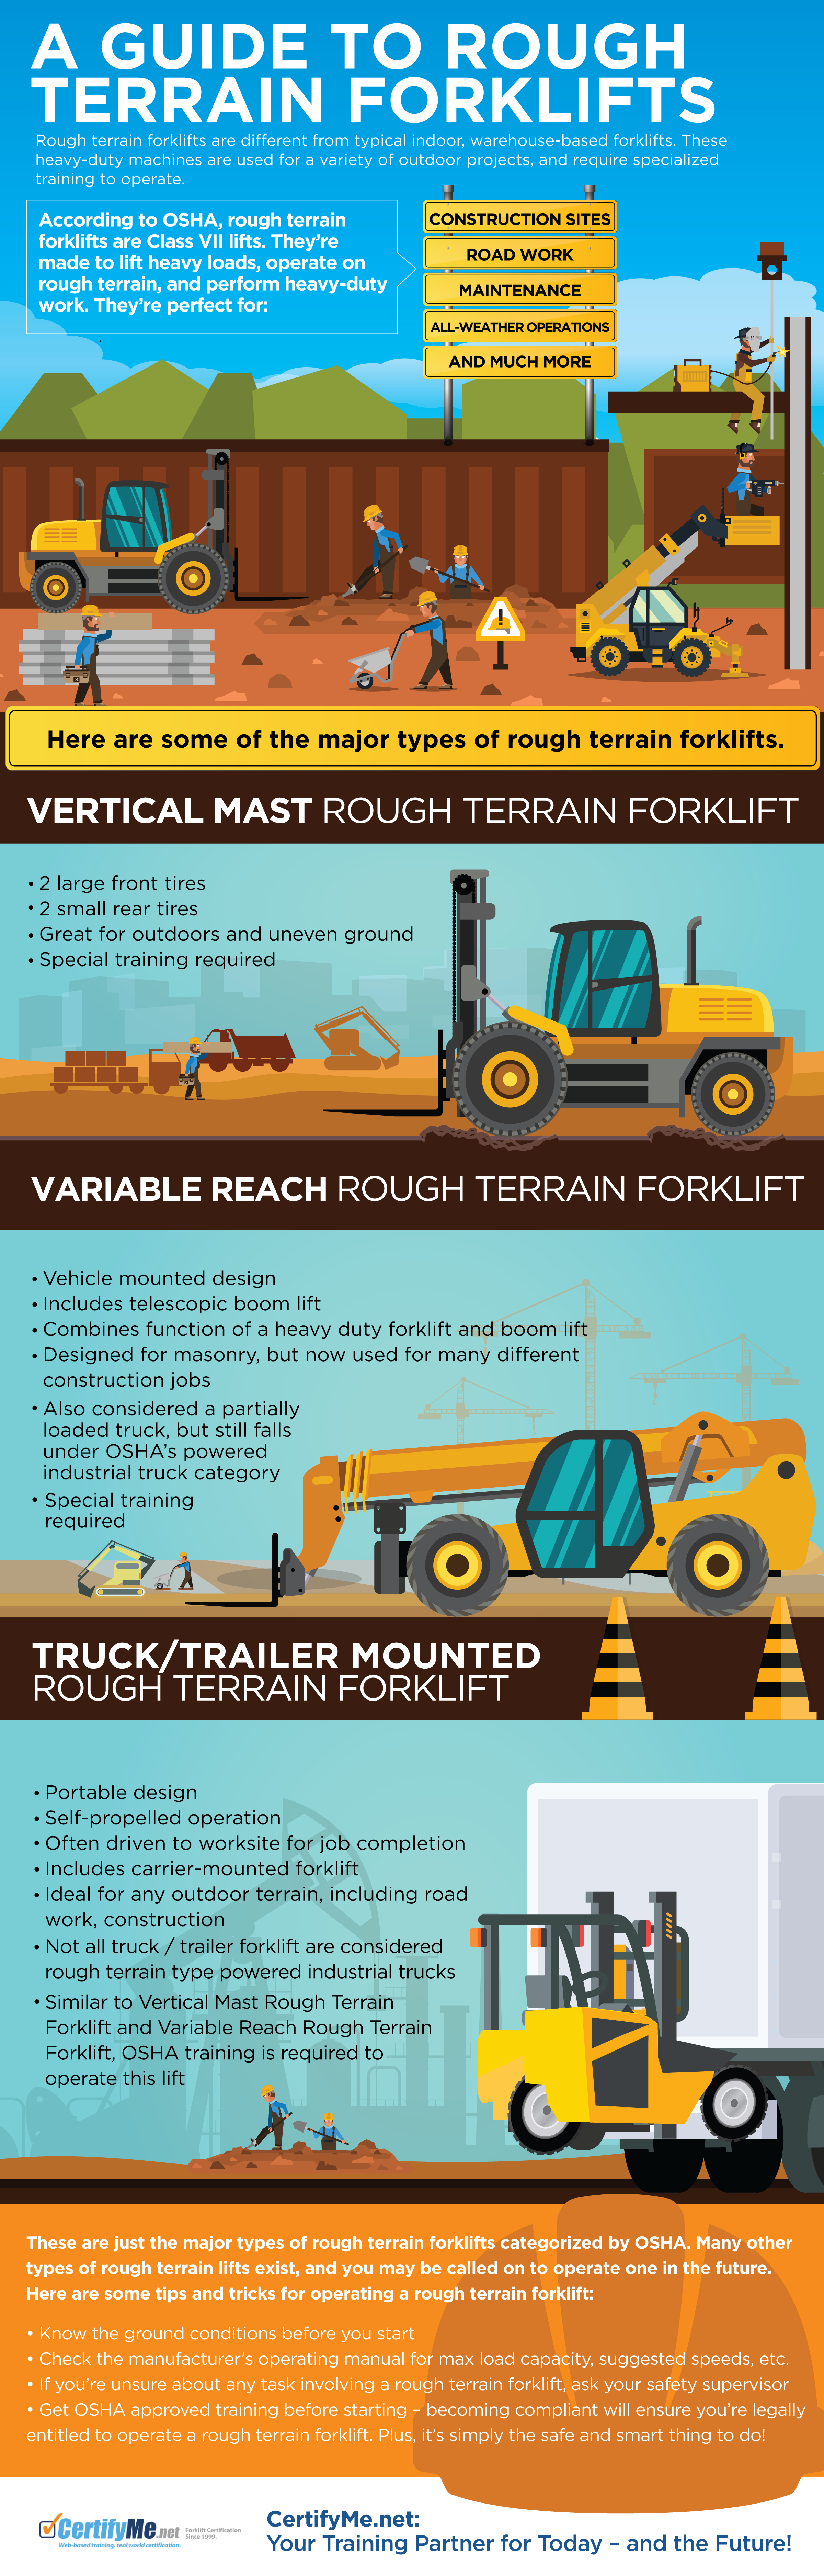 Getting To Know Rough Terrain Forklifts Certifyme